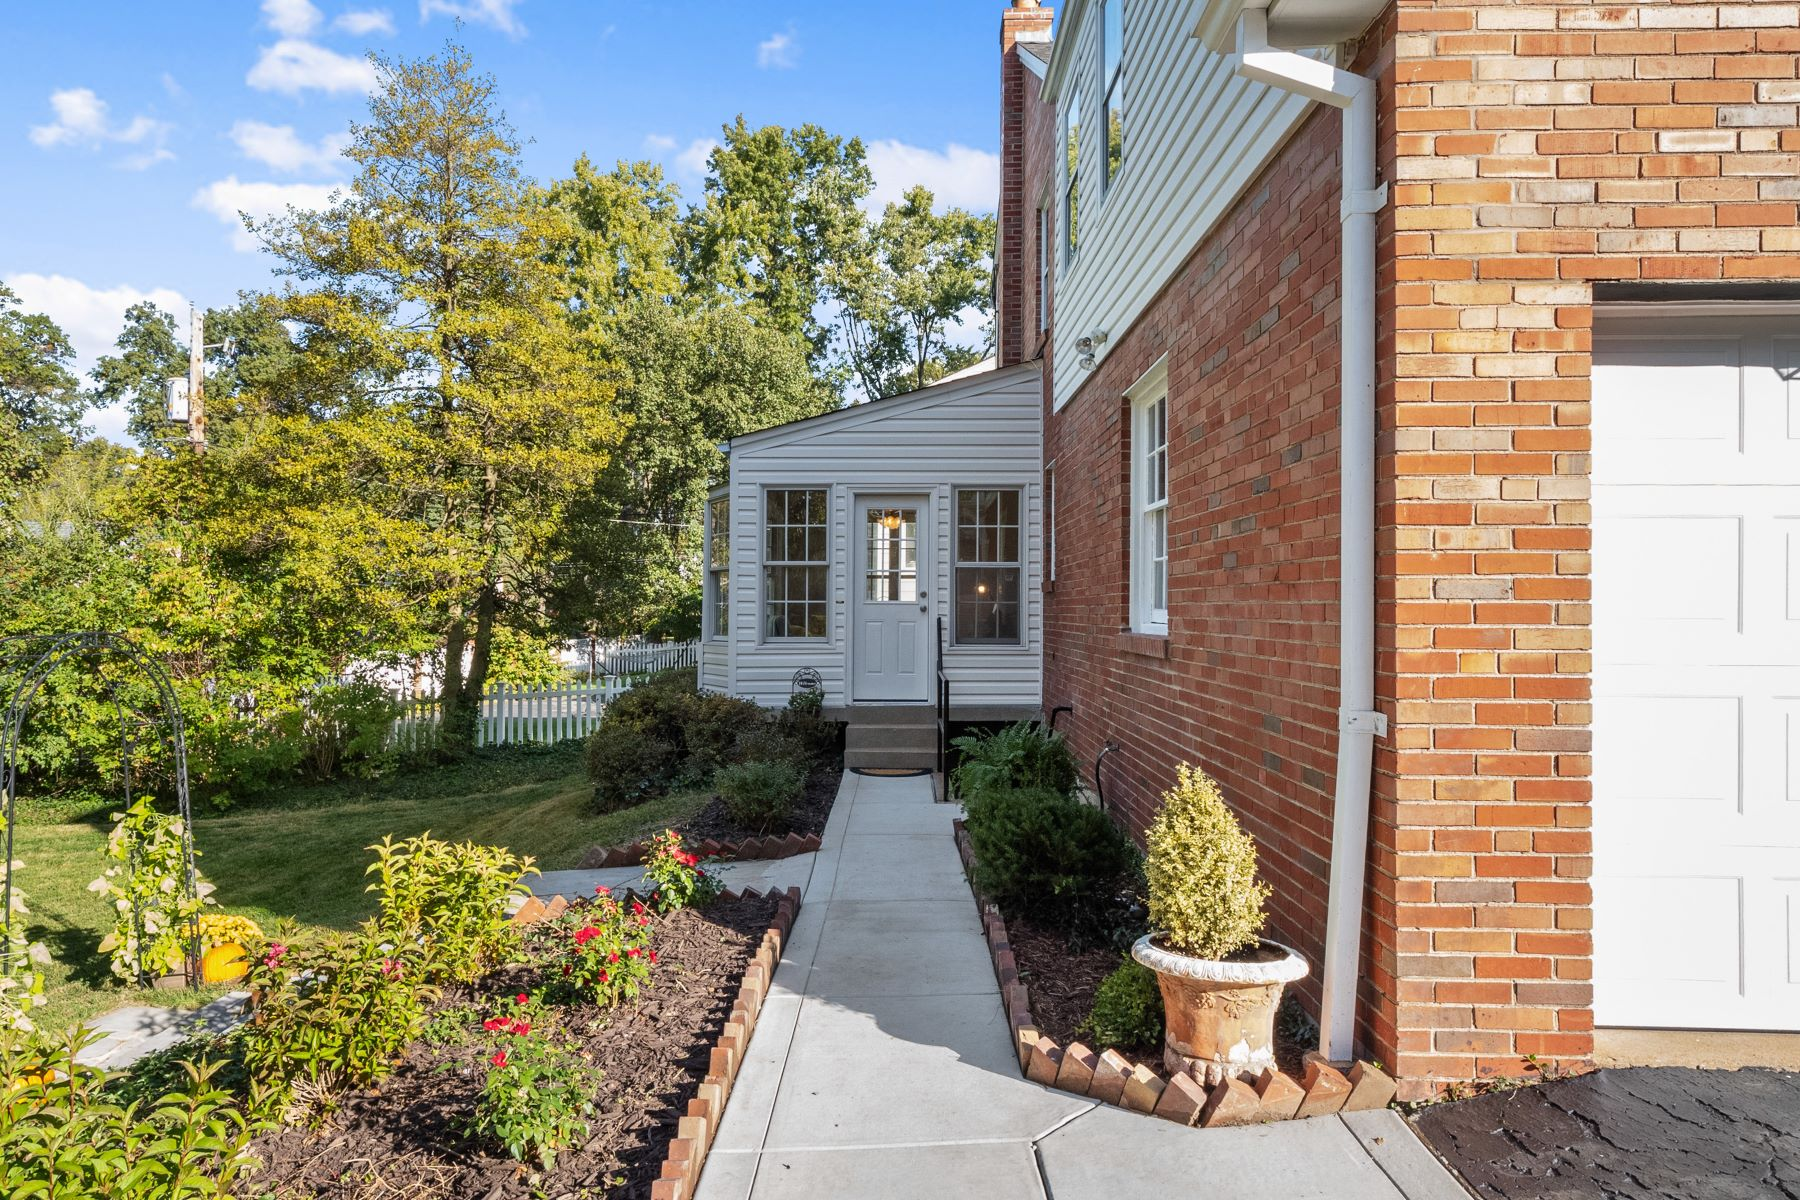 Additional photo for property listing at Charming Updated Two-Story Brick Home in Sought After Neighborhood! 40 Hill Drive Kirkwood, Missouri 63122 United States